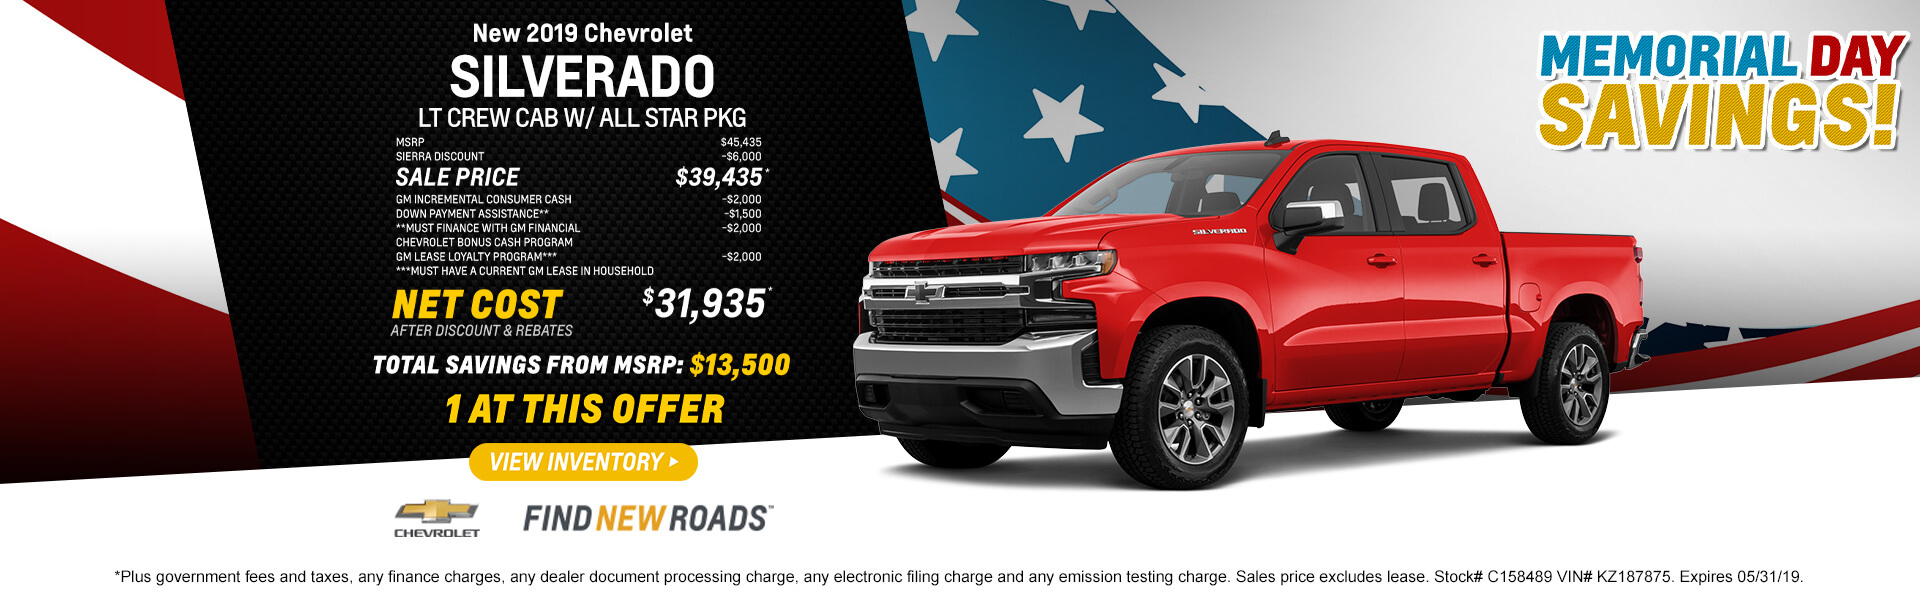 2019 CHEVROLET SILVERADO LT CREW CAB W/ ALL STAR PKG Purchase $45,435 Plus government fees and taxes, any finance charges, any dealer document processing charge, any electronic filing charge and any emission testing charge. Sales price excludes lease. Stock# C158489 VIN# KZ187875. Expires 05/31/19.